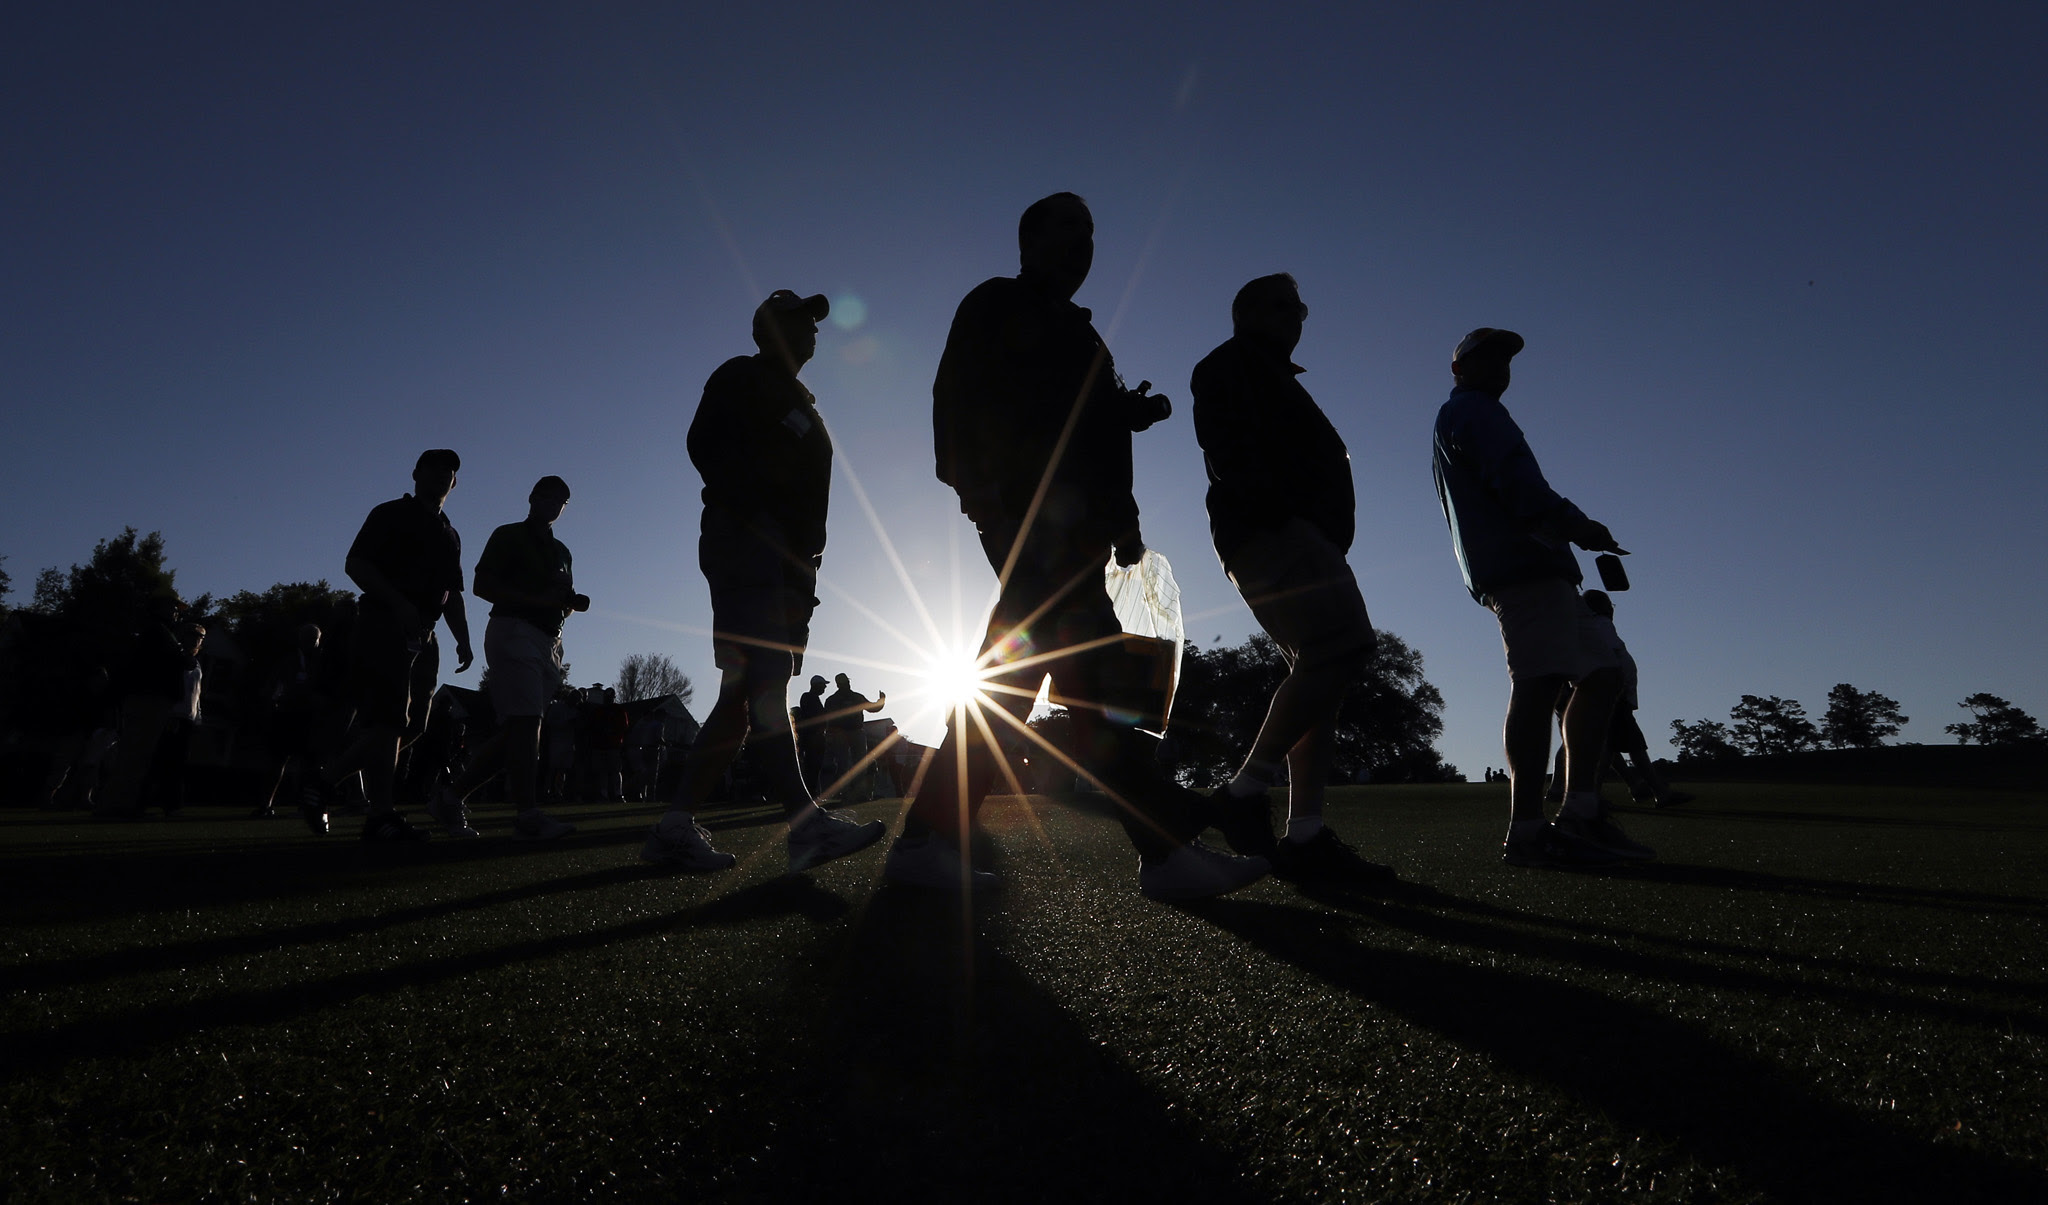 Spectators arrive for the final practice round for the Masters golf tournament Wednesday, April 6, 2016, in Augusta, Ga. (AP Photo/David J. Phillip)